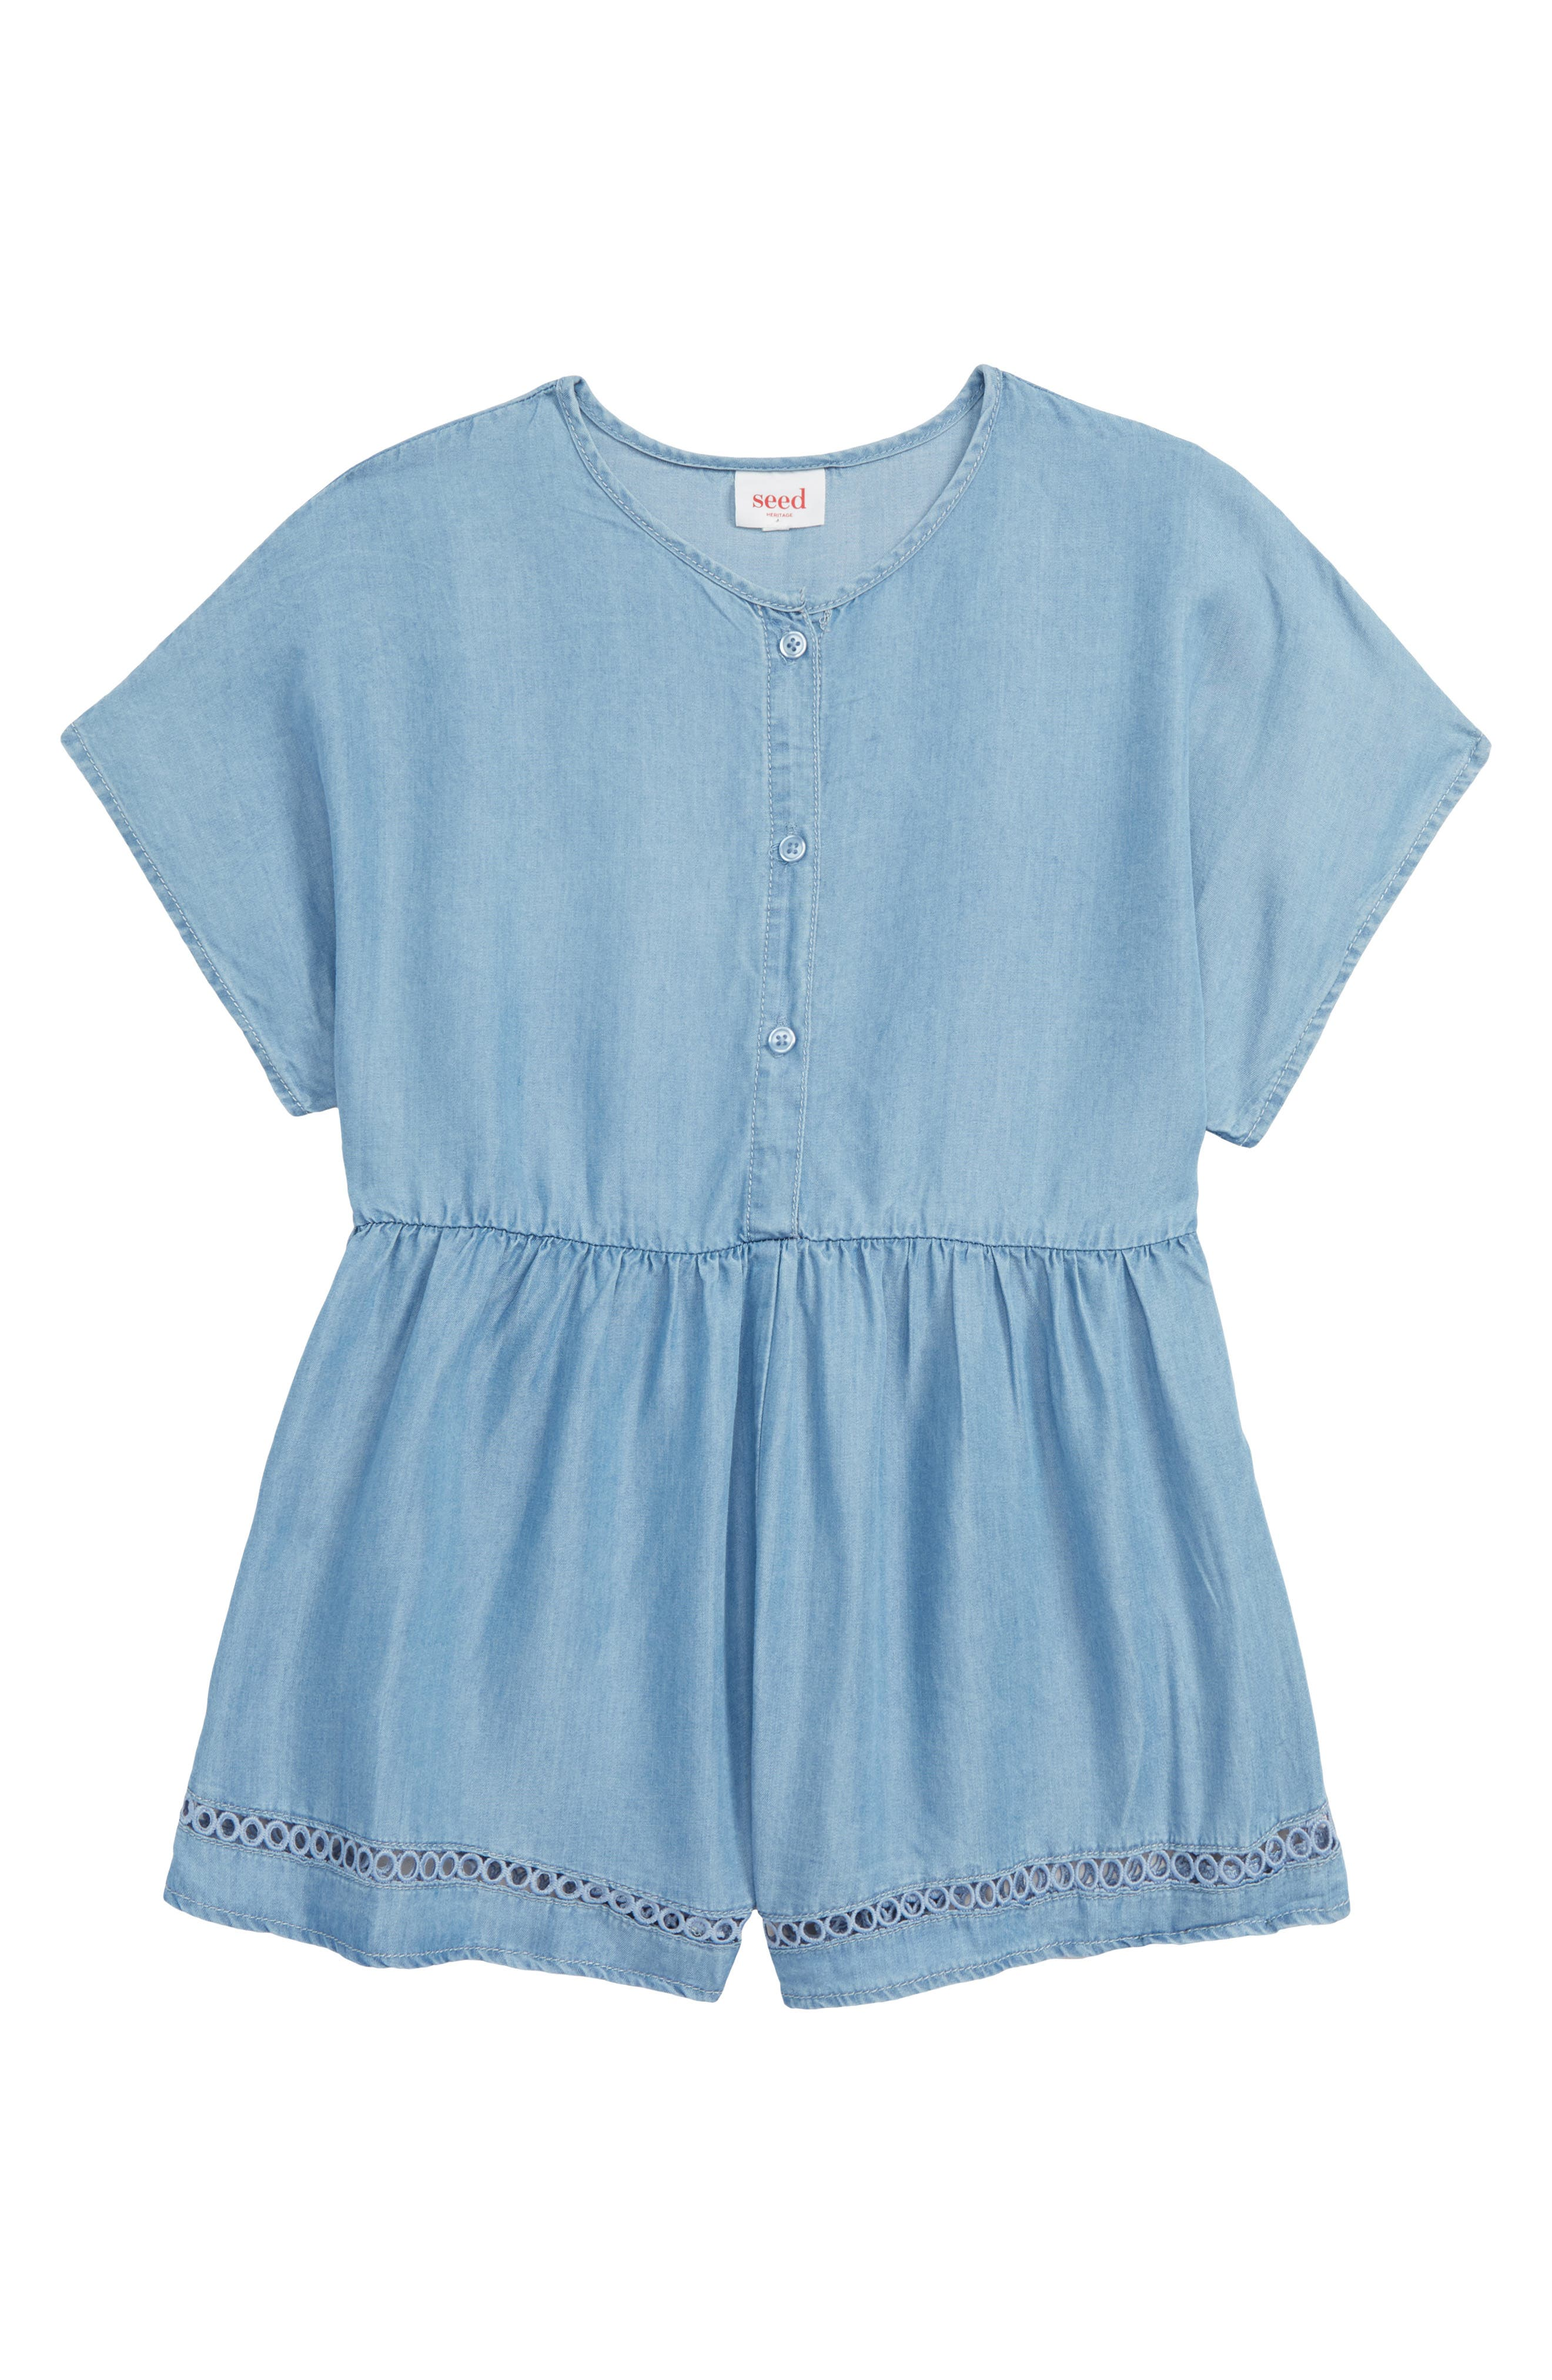 Toddler Girls Seed Heritage Denim Romper Size 3  Blue